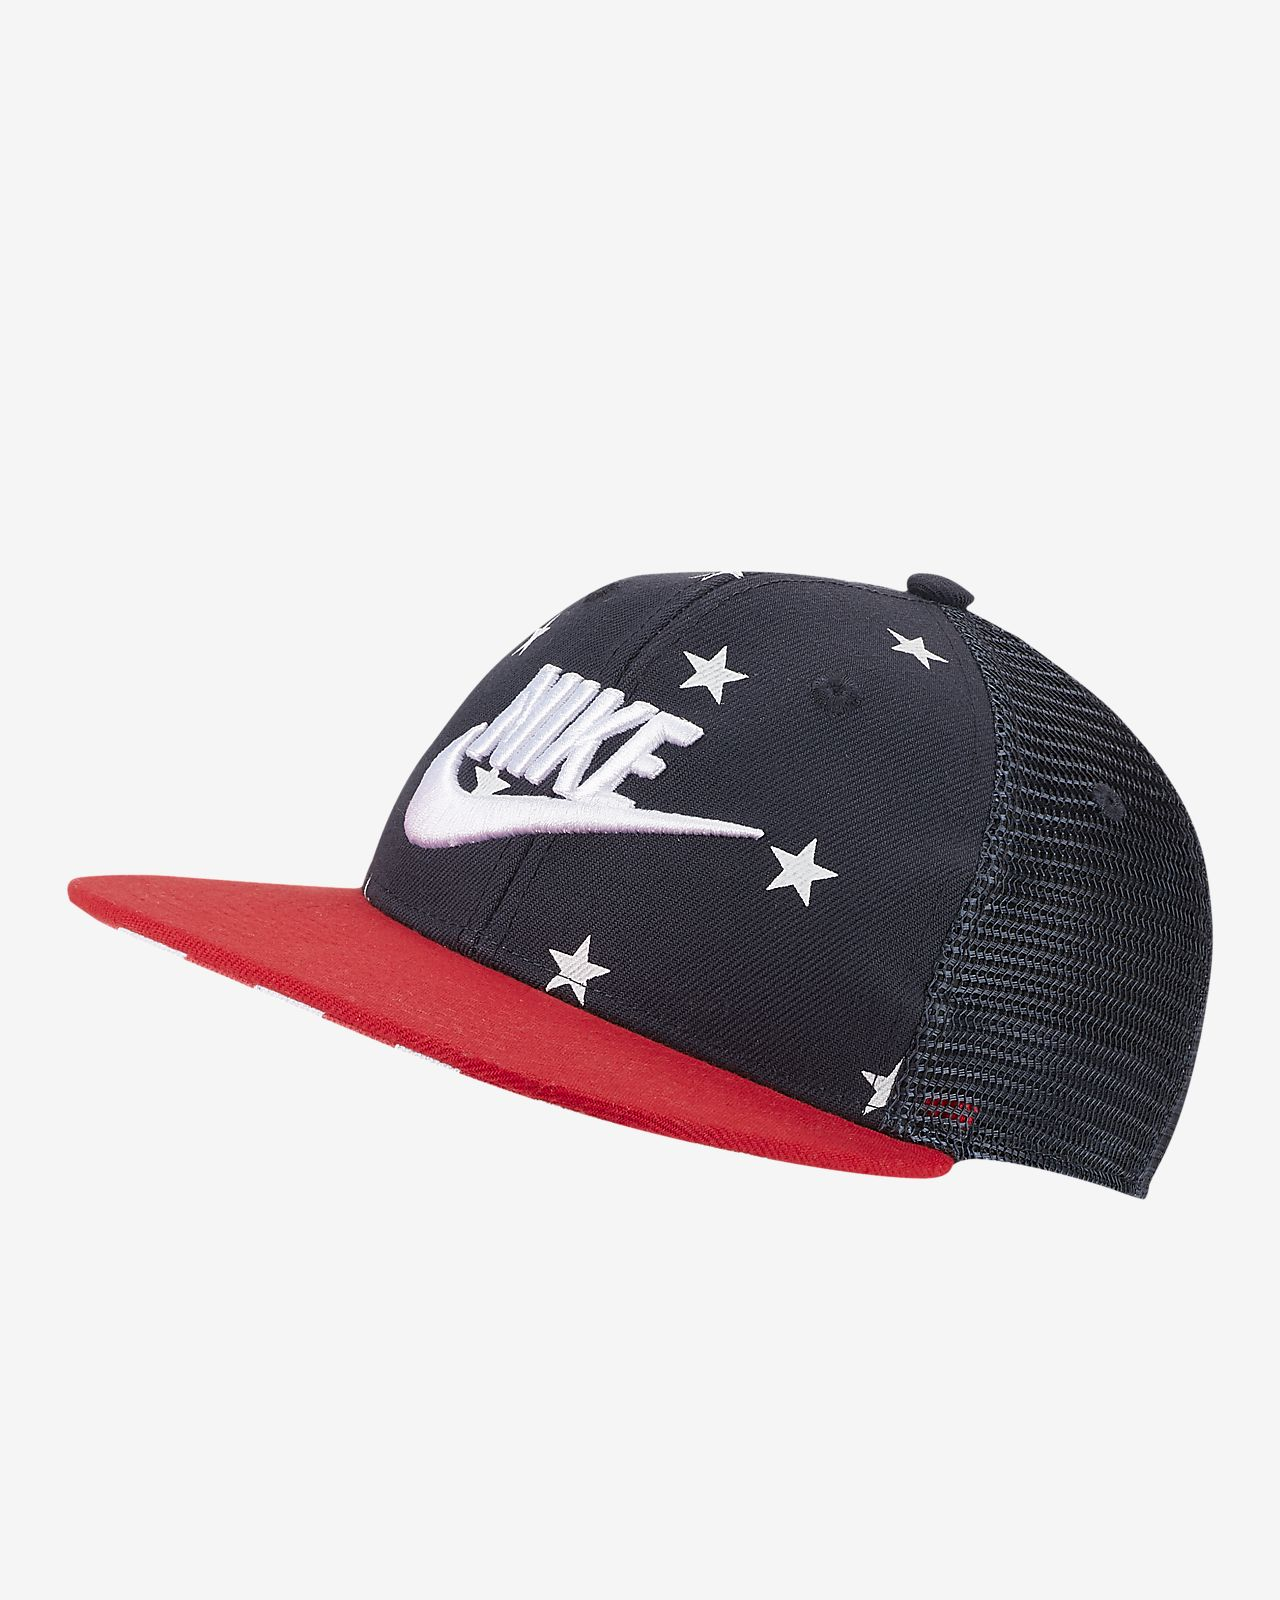 Nike Sportswear Younger Kids' Adjustable Trucker Hat